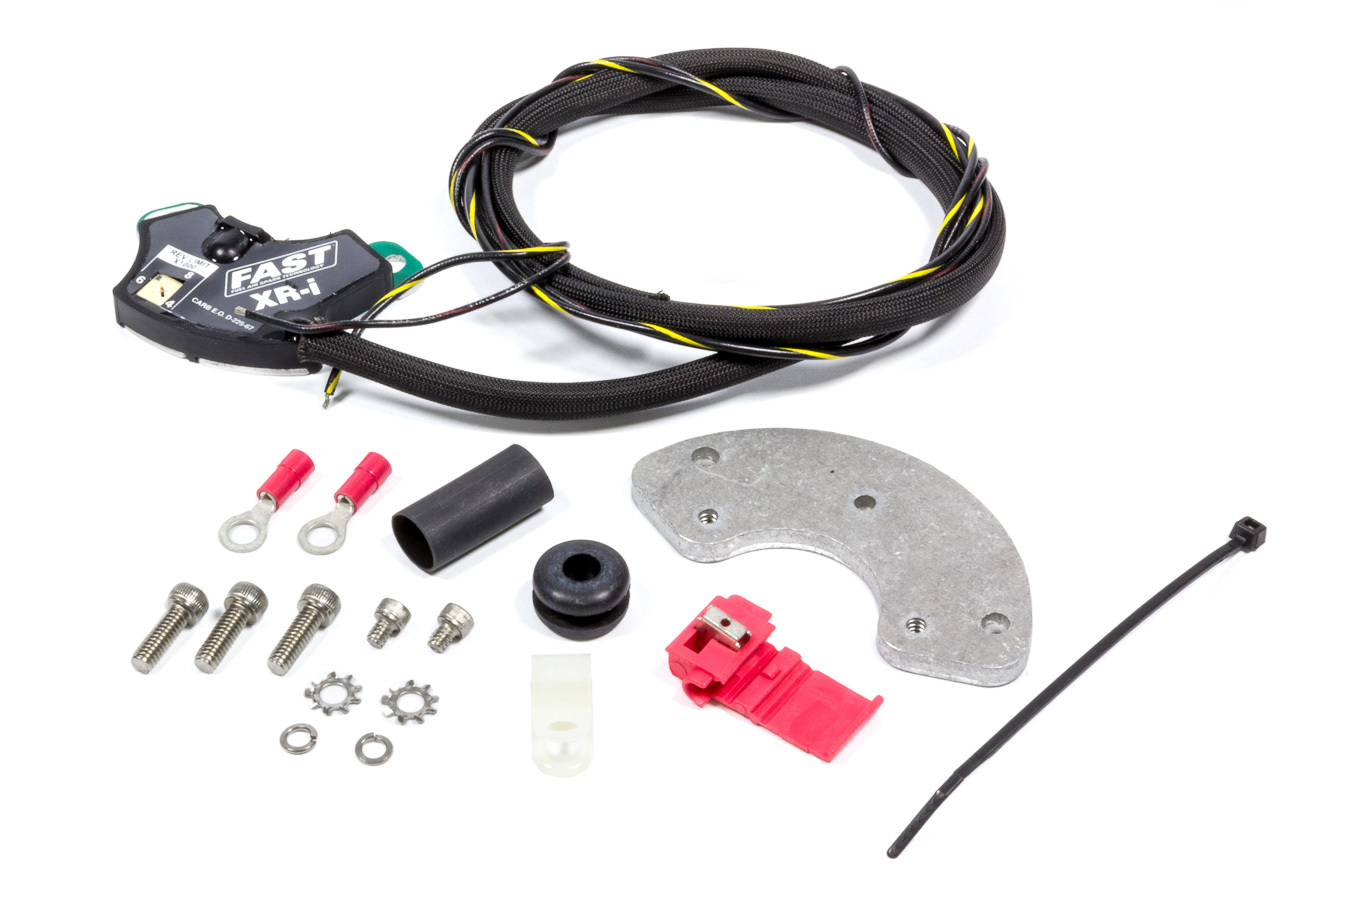 FAST 750-1710 Ignition Conversion Kit, XR-I, Points to Electronic, Distributor Cam Lobe Trigger, Rev Limiter, Chevy V8, Kit